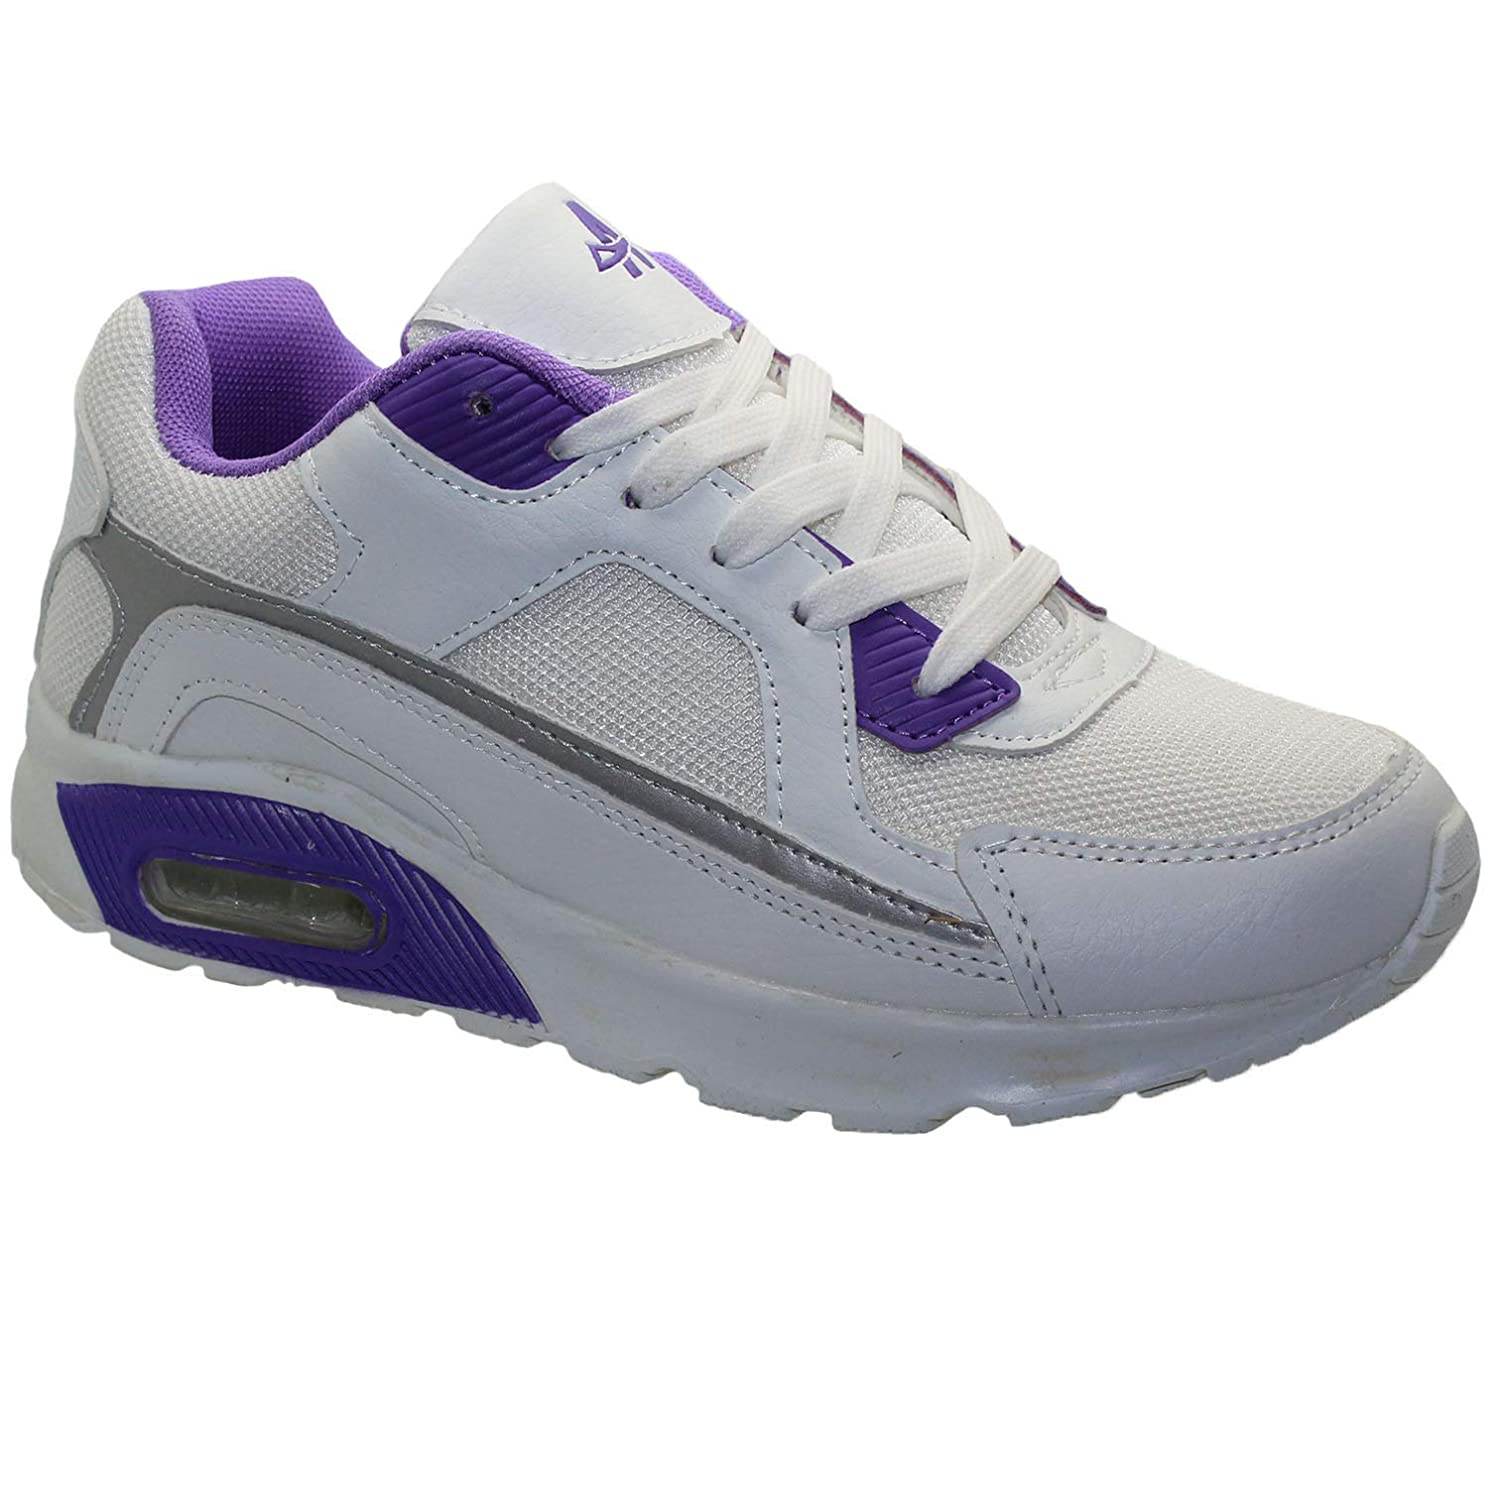 Girls School Shoes Kids Skate Boots Casual Sport Running Trainers White  Boots Ladies  Amazon.co.uk  Shoes   Bags 3348622f7